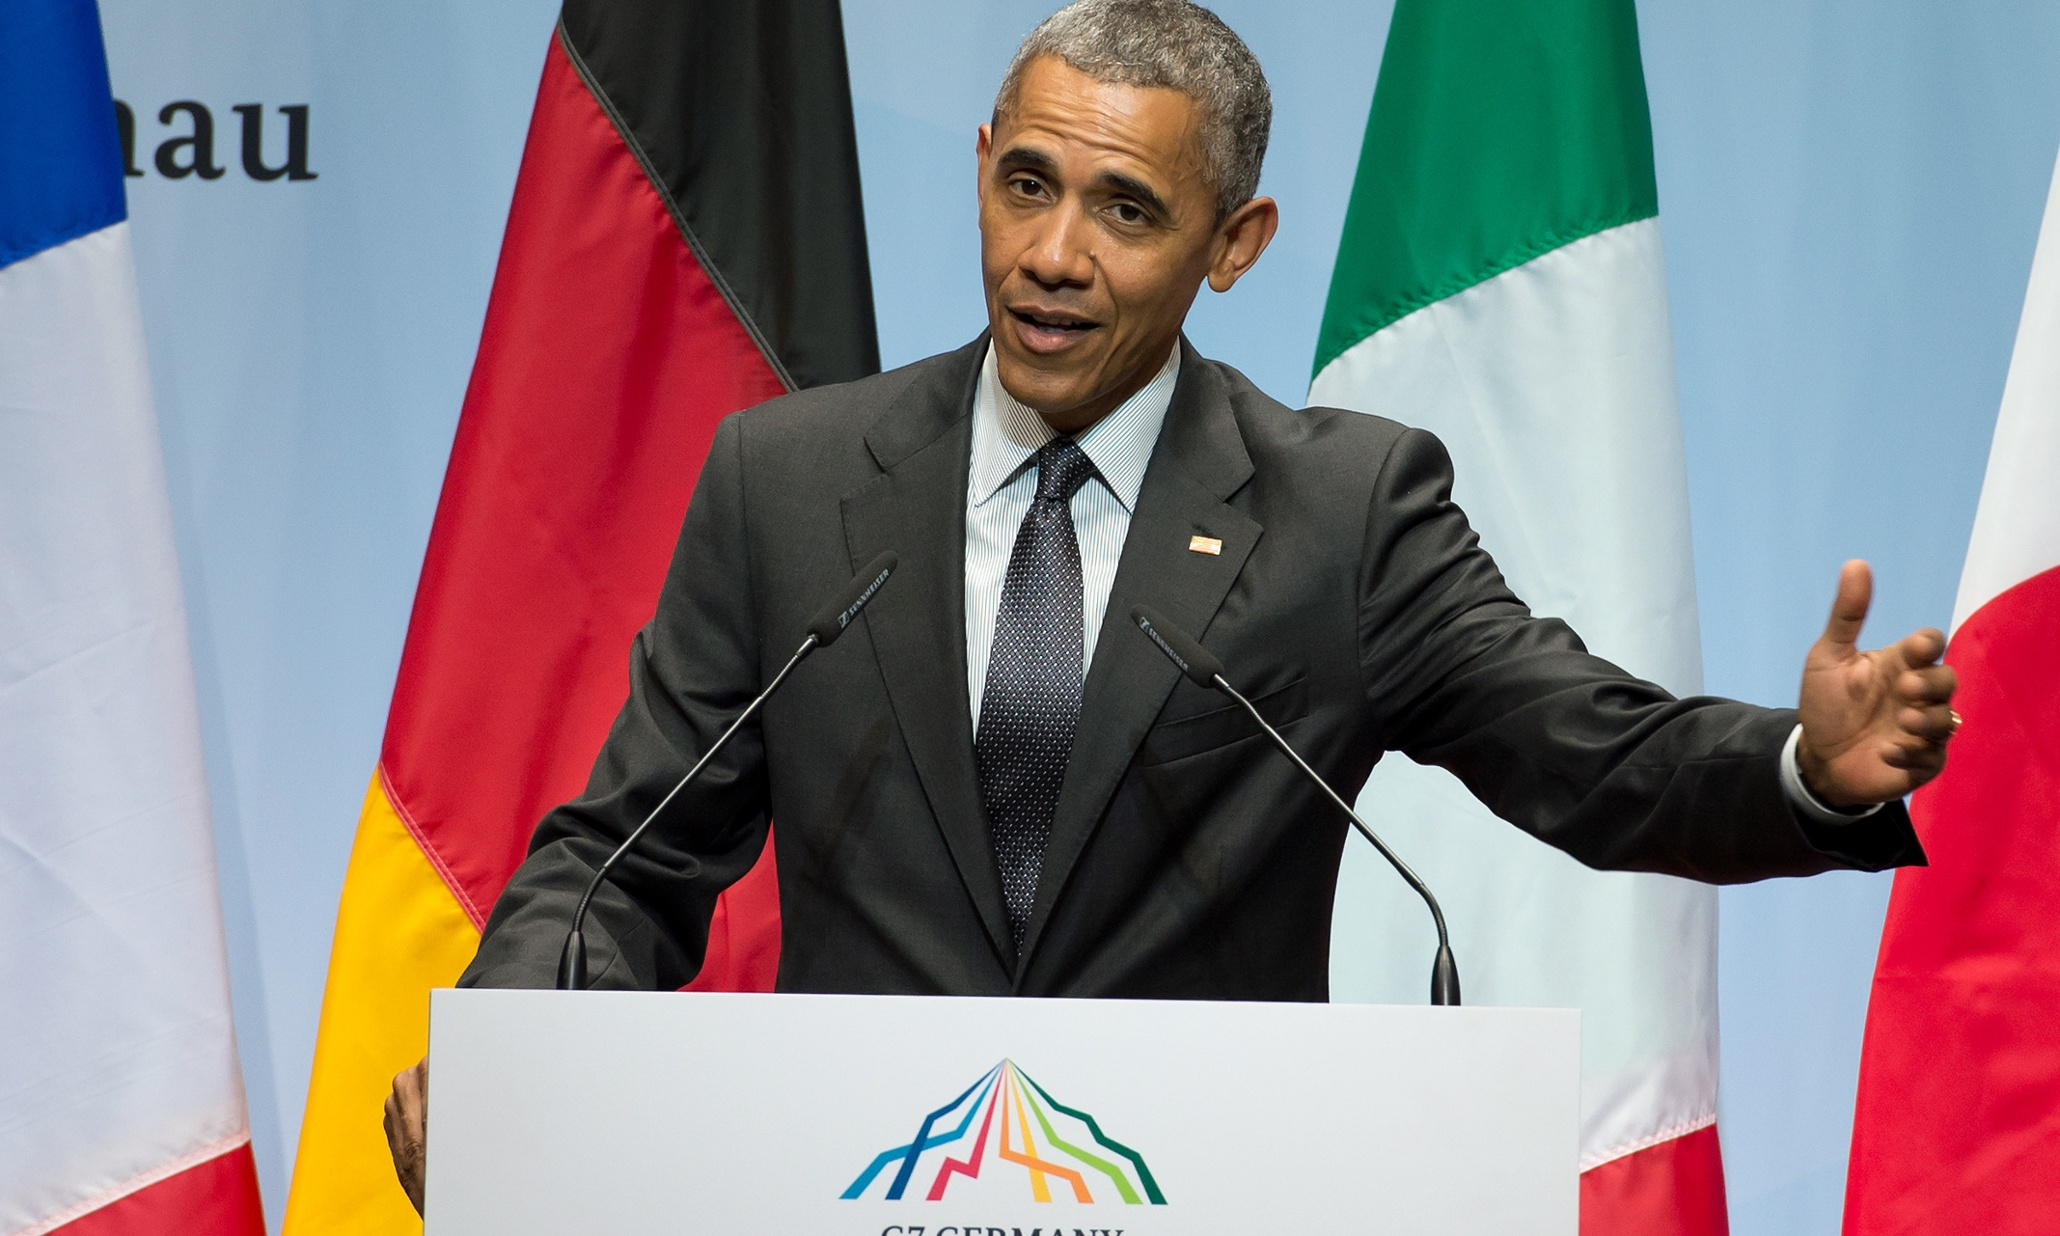 G7 leaders ready to tighten sanctions against Russia if Ukraine crisis escalates